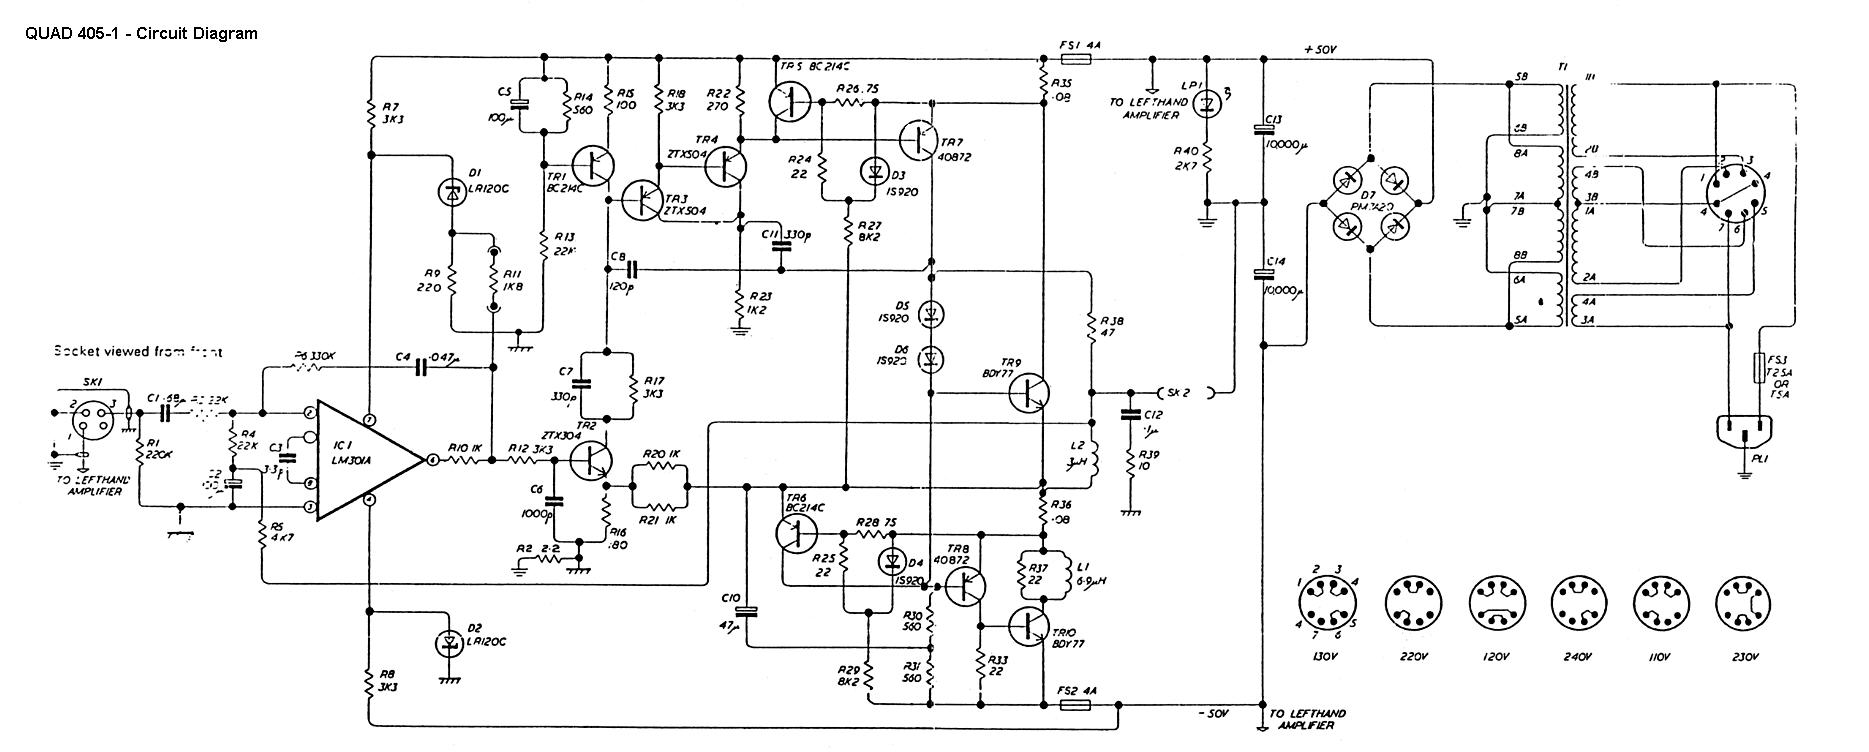 Circuit Dias Electrical Engineering Schematics Complete Diagram